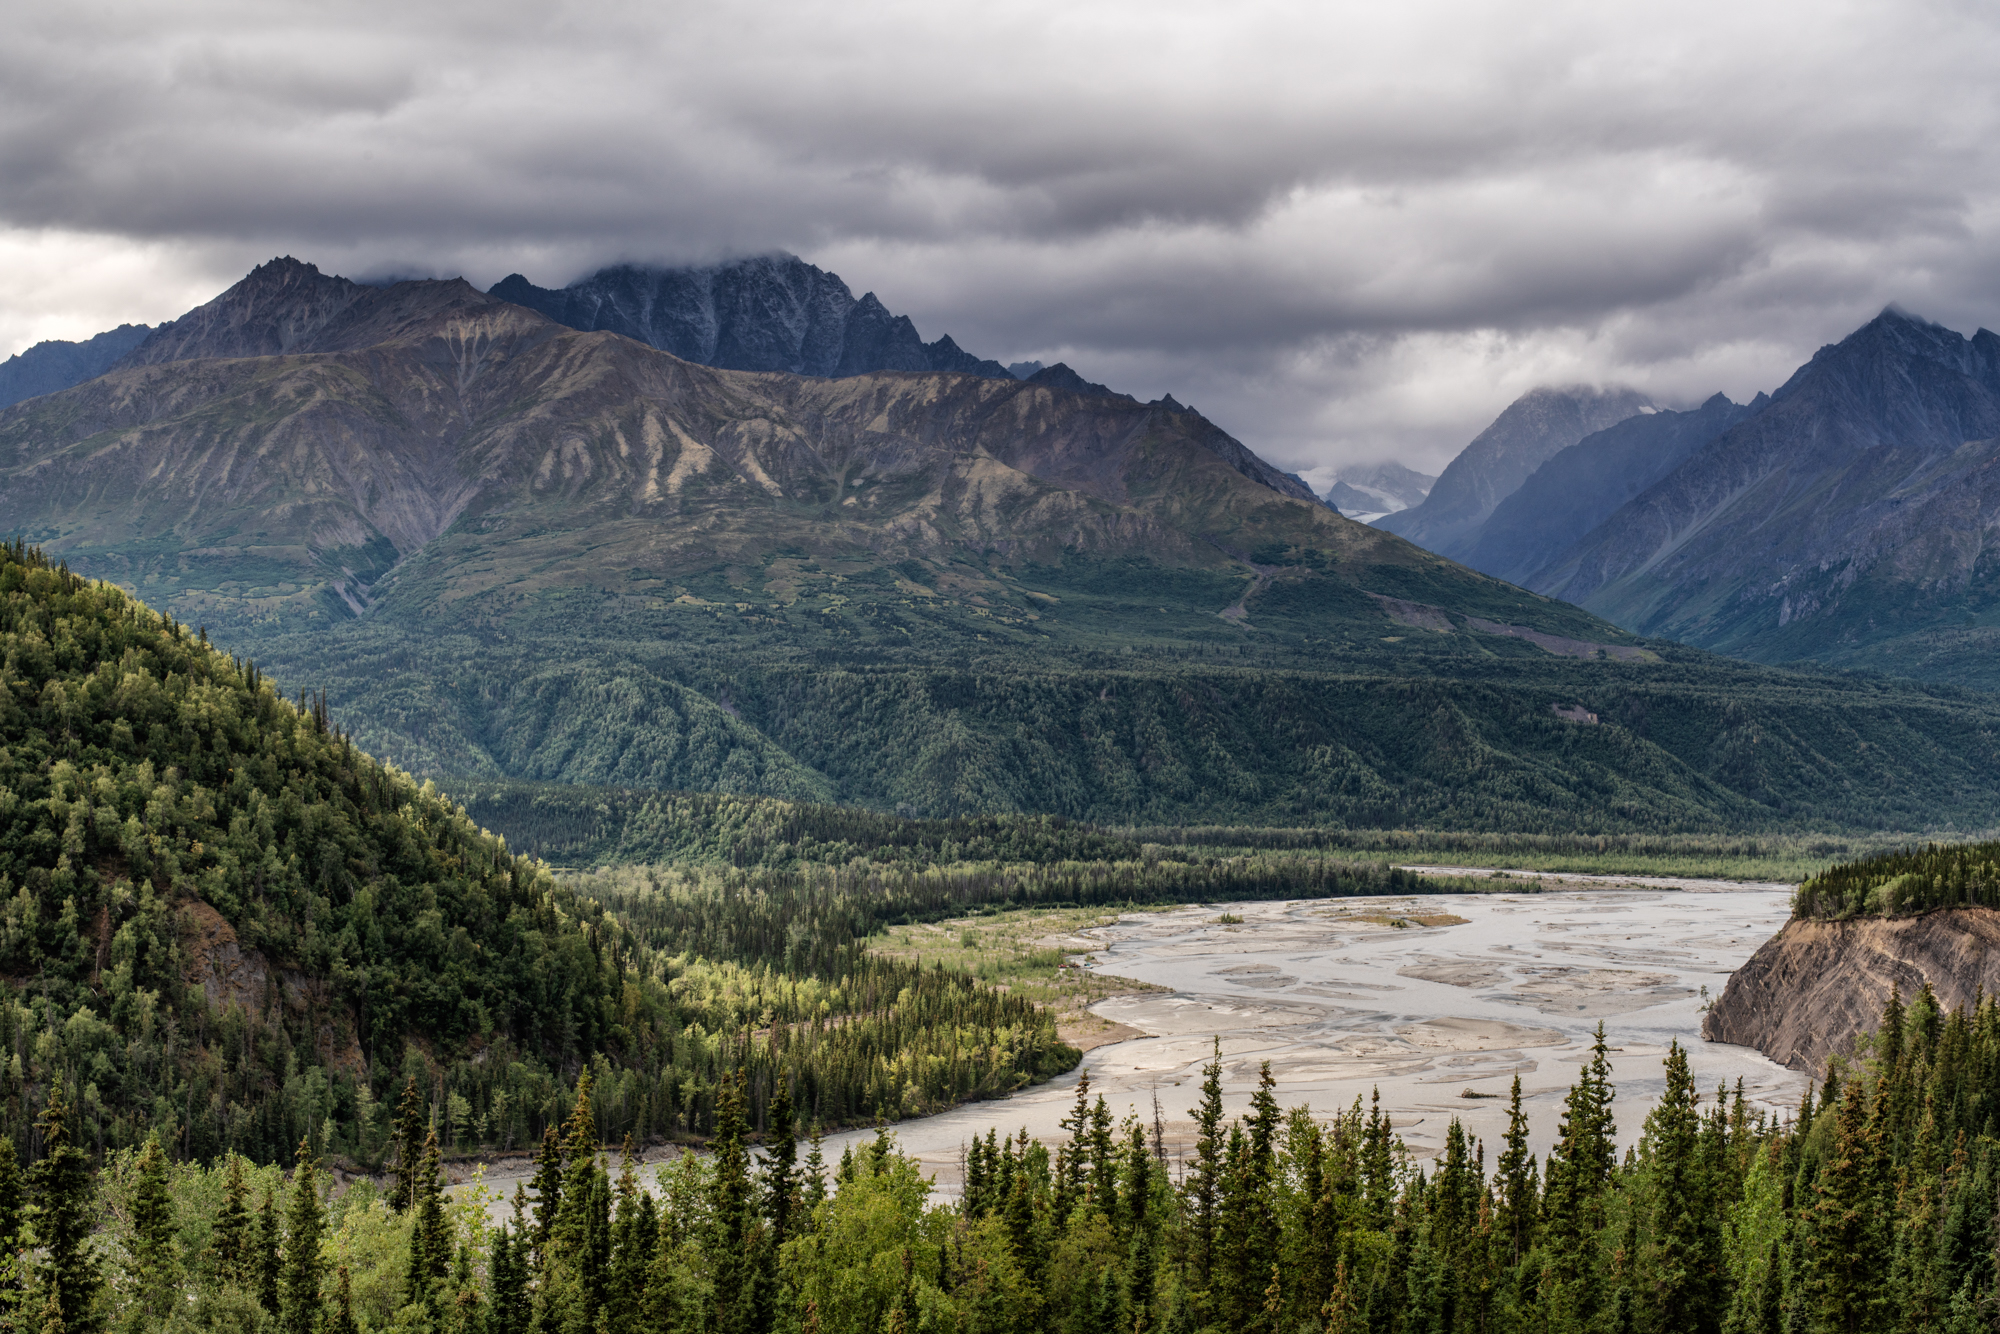 Matanuska River, Glacier View, Alaska, August 18, 2019